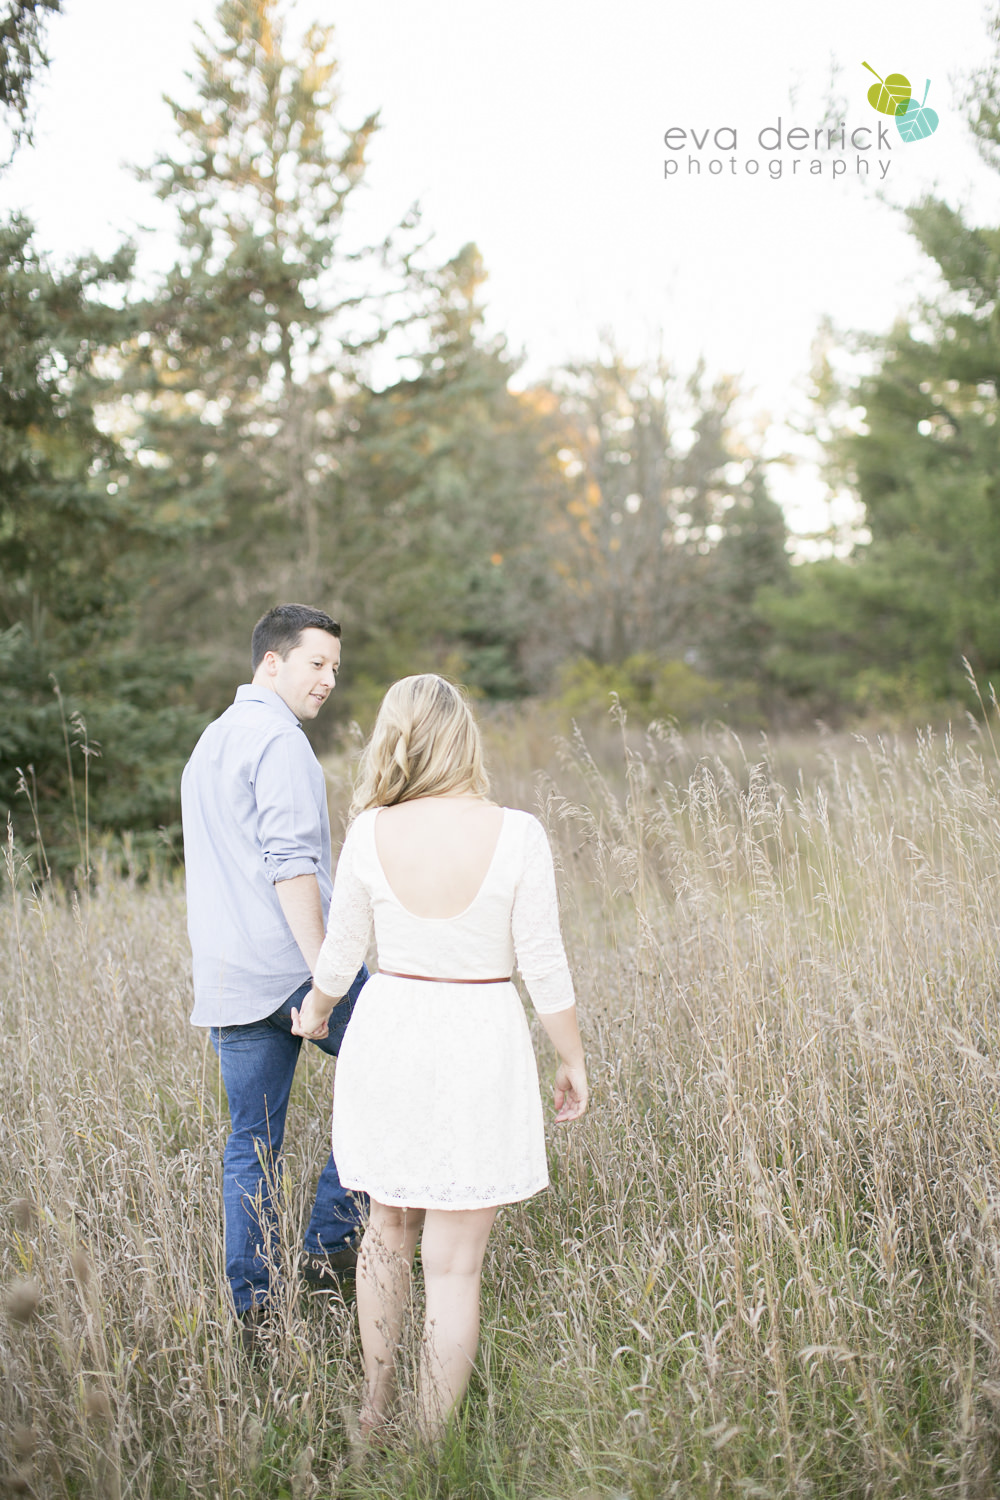 Albion-Hills-Photographer-Engagement-Session-Alanna-Matt-photography-by-Eva-Derrick-Photography-014.JPG